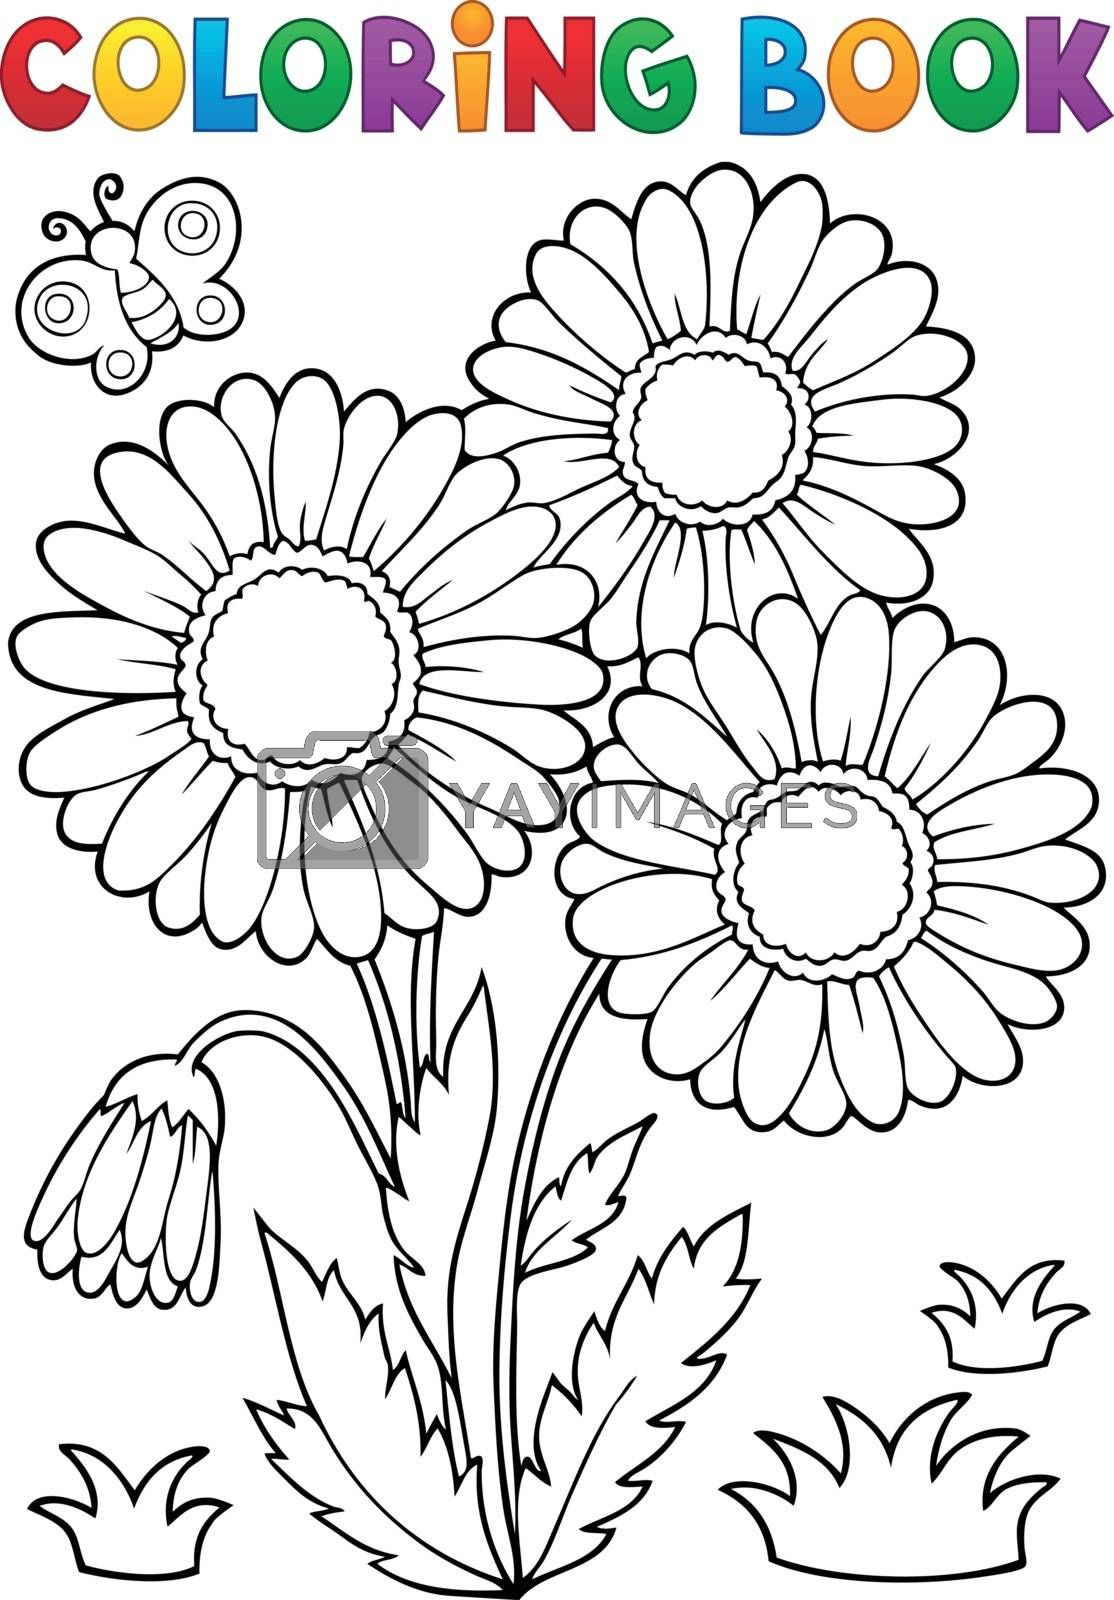 Coloring book daisy flower image 2 - eps10 vector illustration.